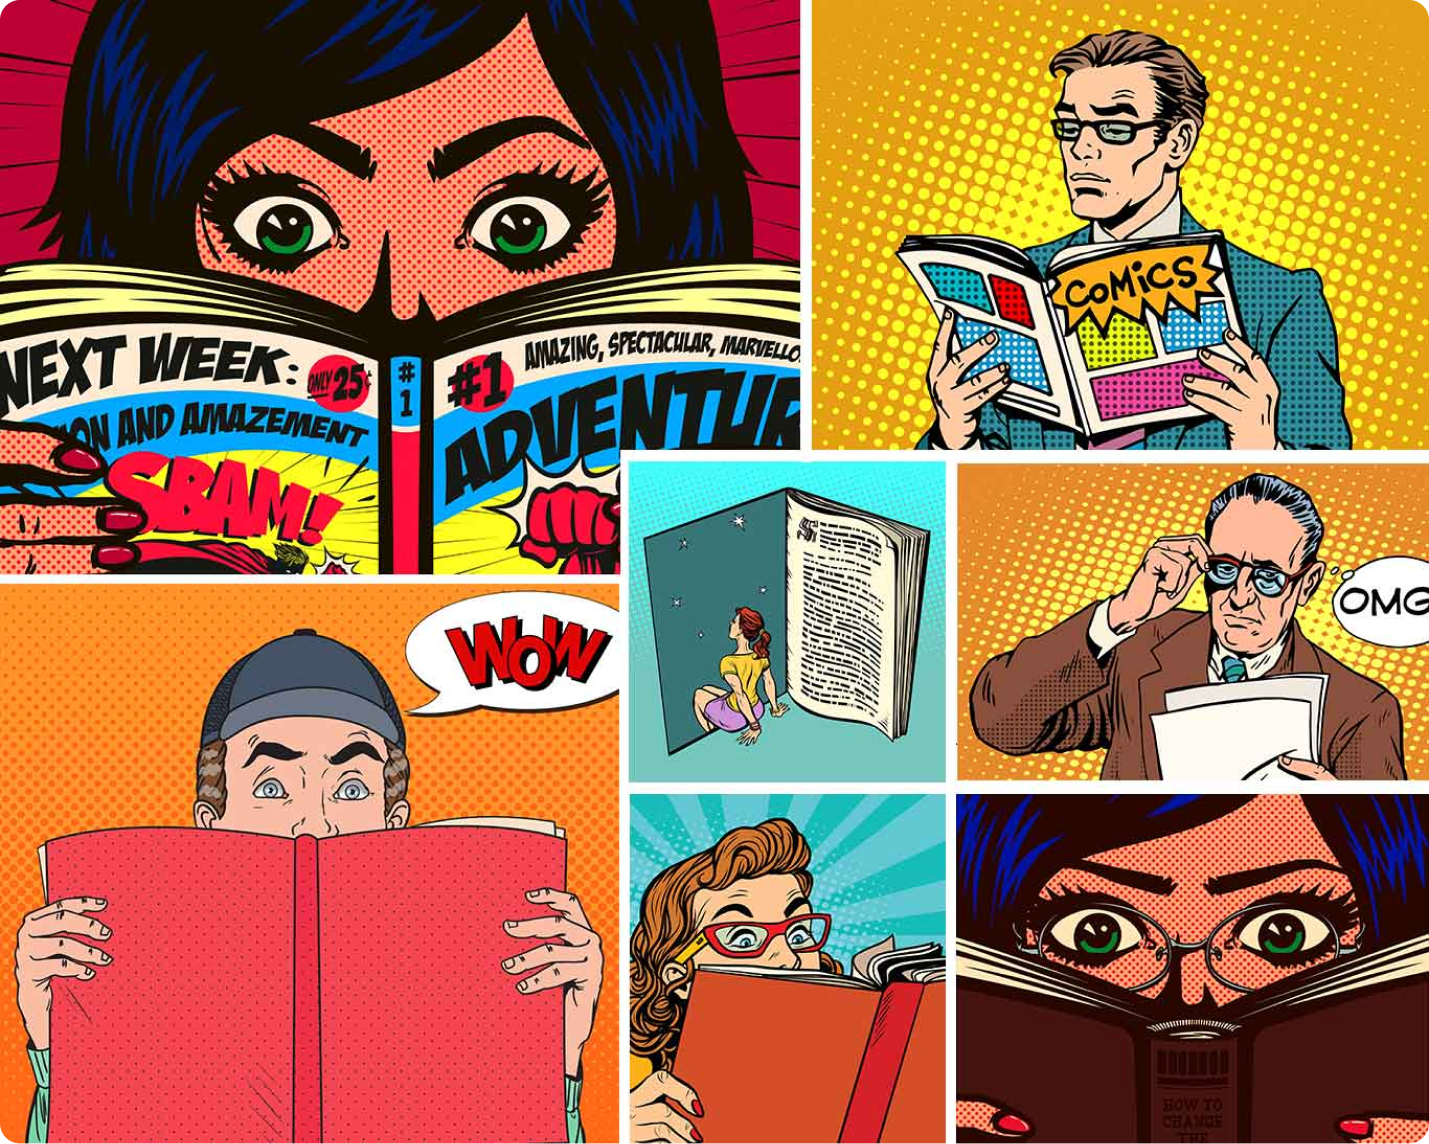 Image featuring illustrations of people reading comics